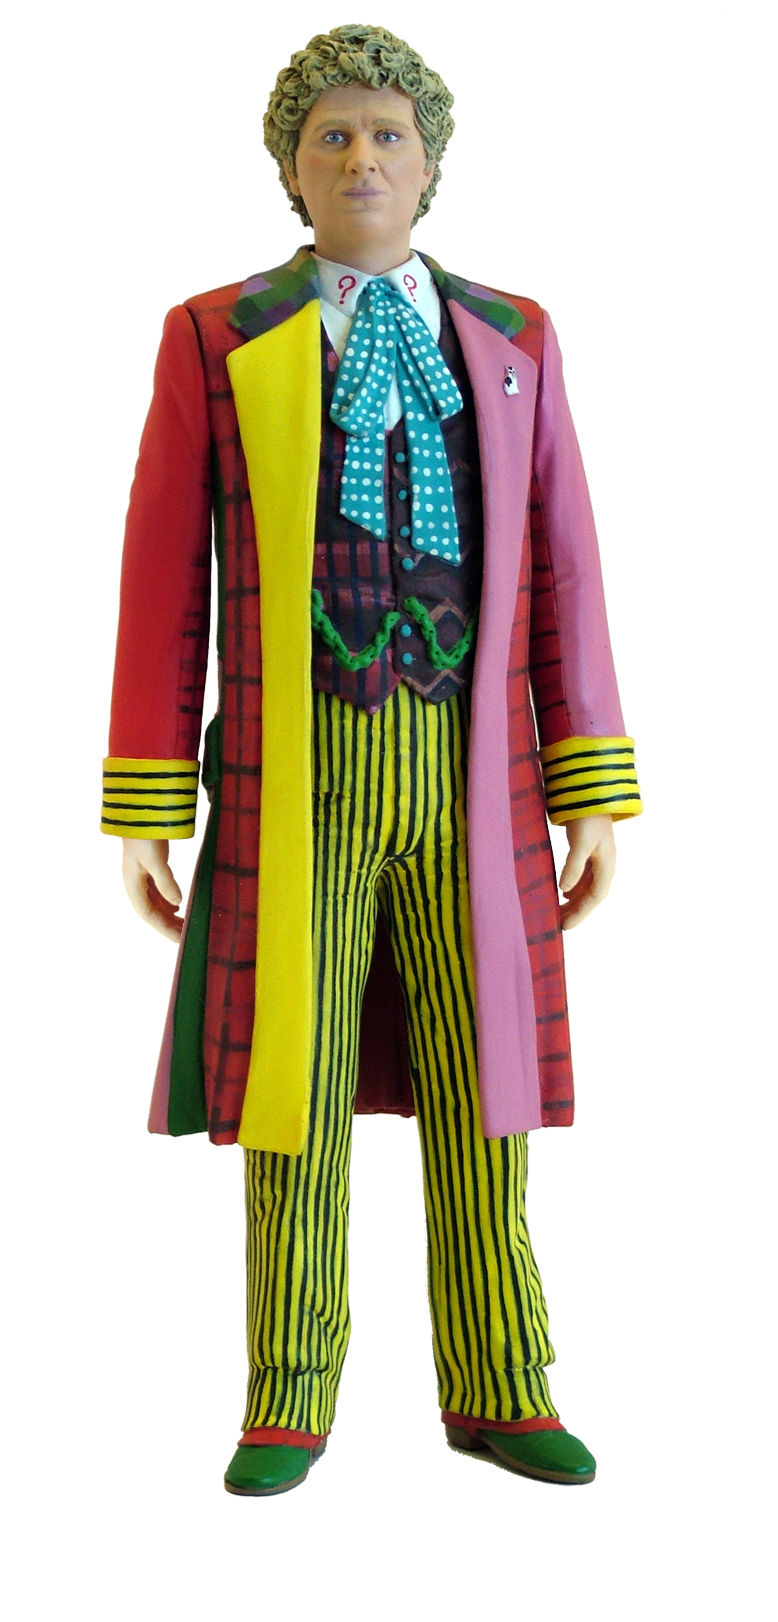 Sixth doctor embroidery